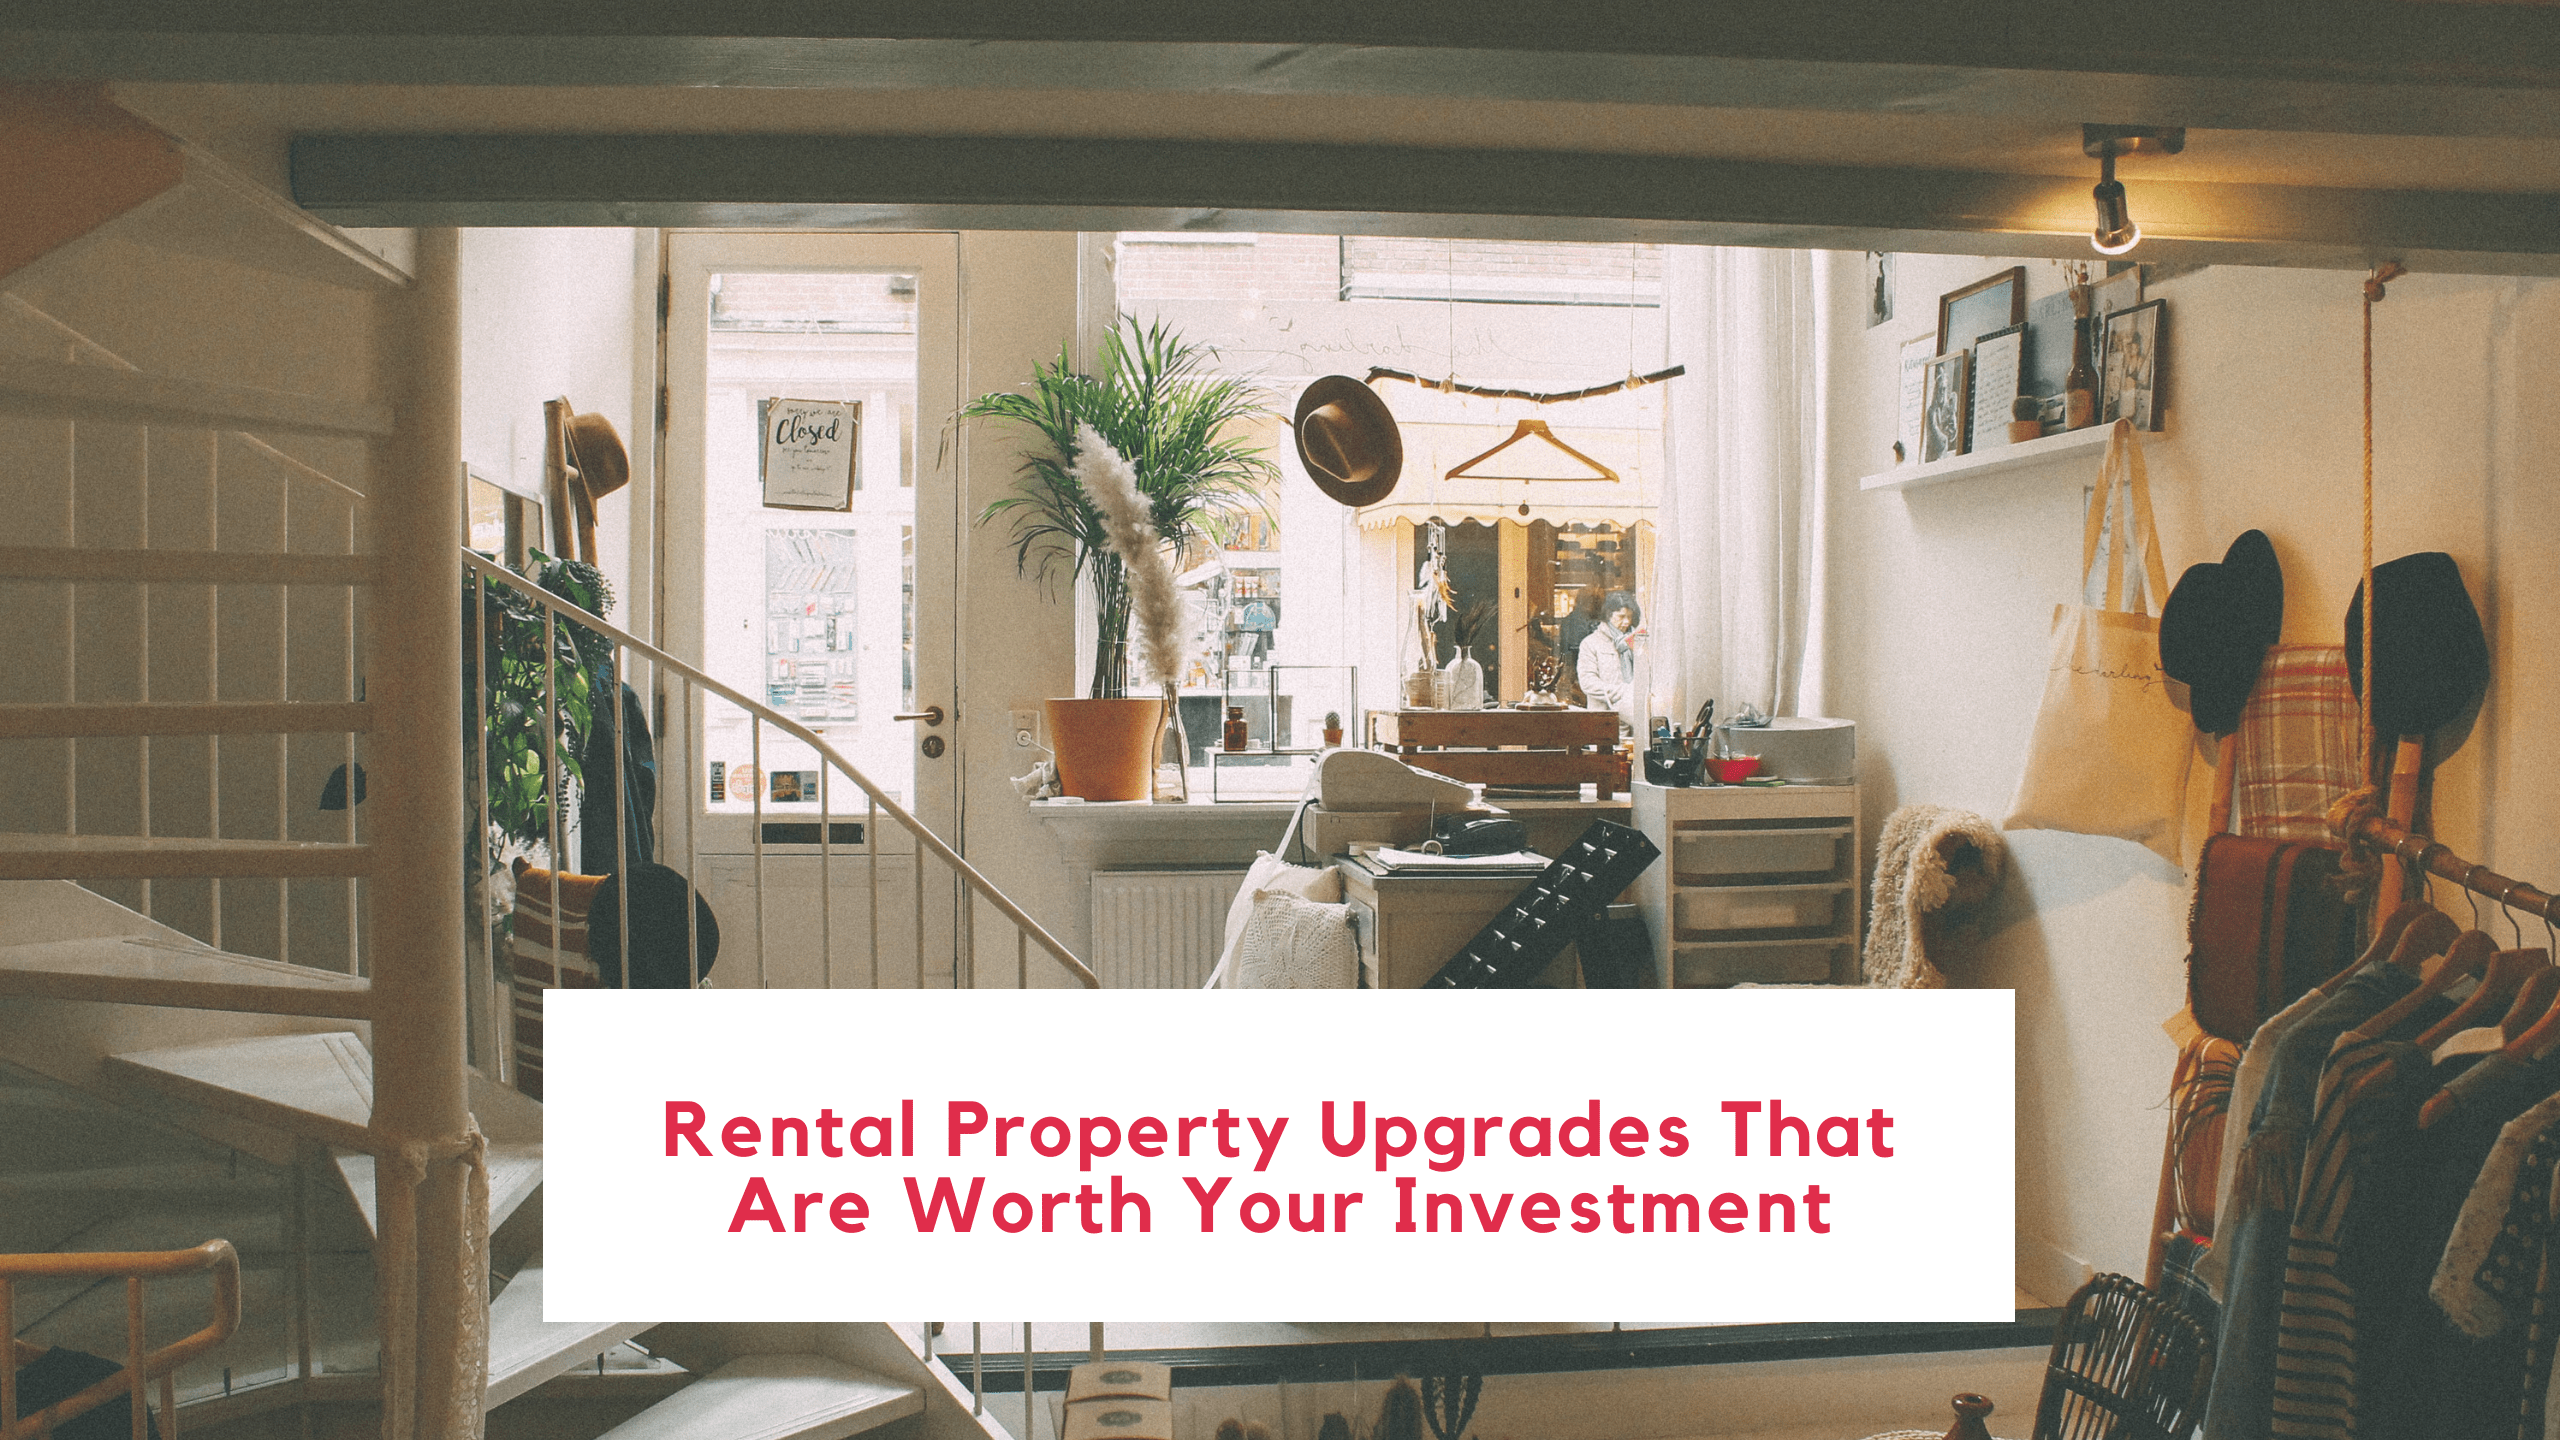 Rental Property Upgrades That Are Worth Your Investment | Phoenix Landlord Advice